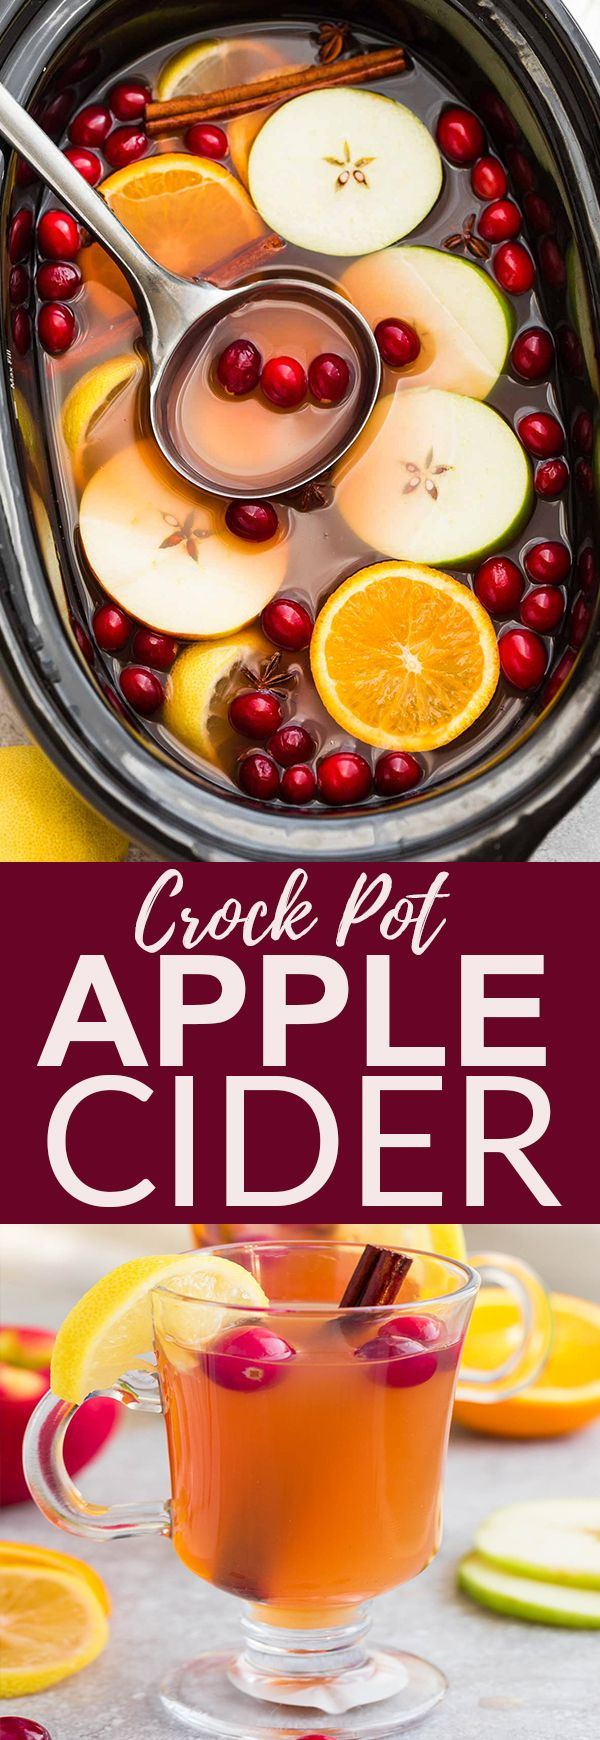 This Crock Pot Apple Cider Recipe is the perfect easy drink for fall and the holiday Christmas season. Best of all, made entirely in the slow cooker with apples, orange, lemon, cranberries, cinnamon and cloves. Set and forget and makes your house smell amazing! Grab a warm mug and and sit by a cozy fireplace all winter long.